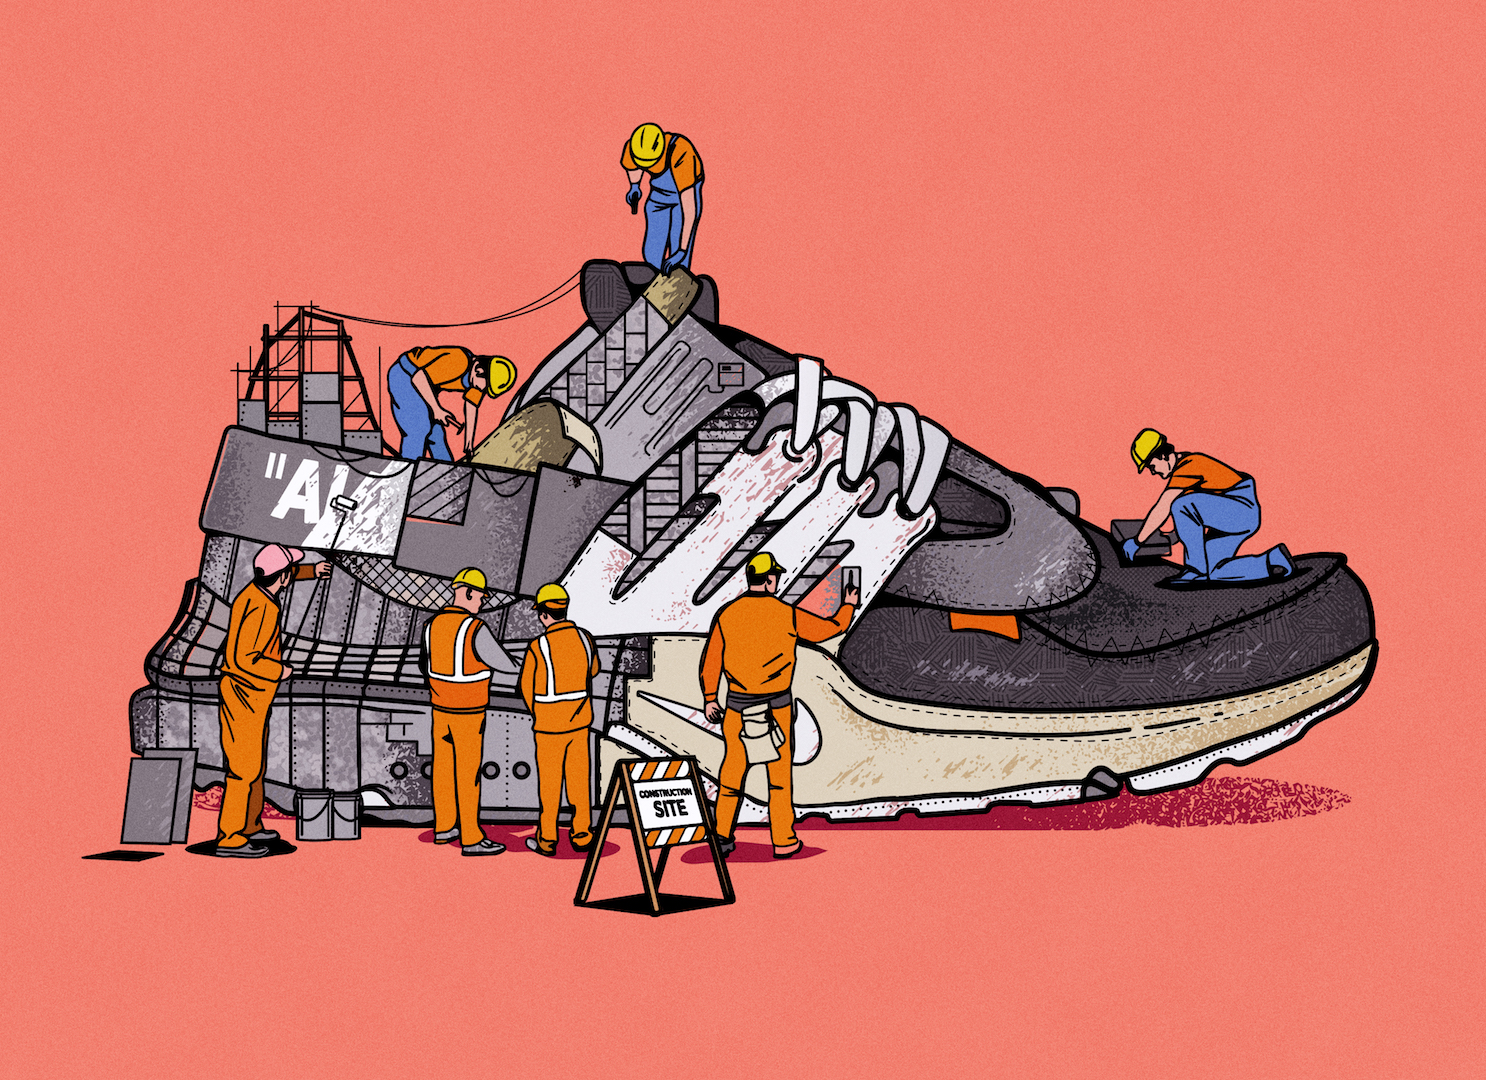 Sneakers Under Construction by Musketon (11 pics)